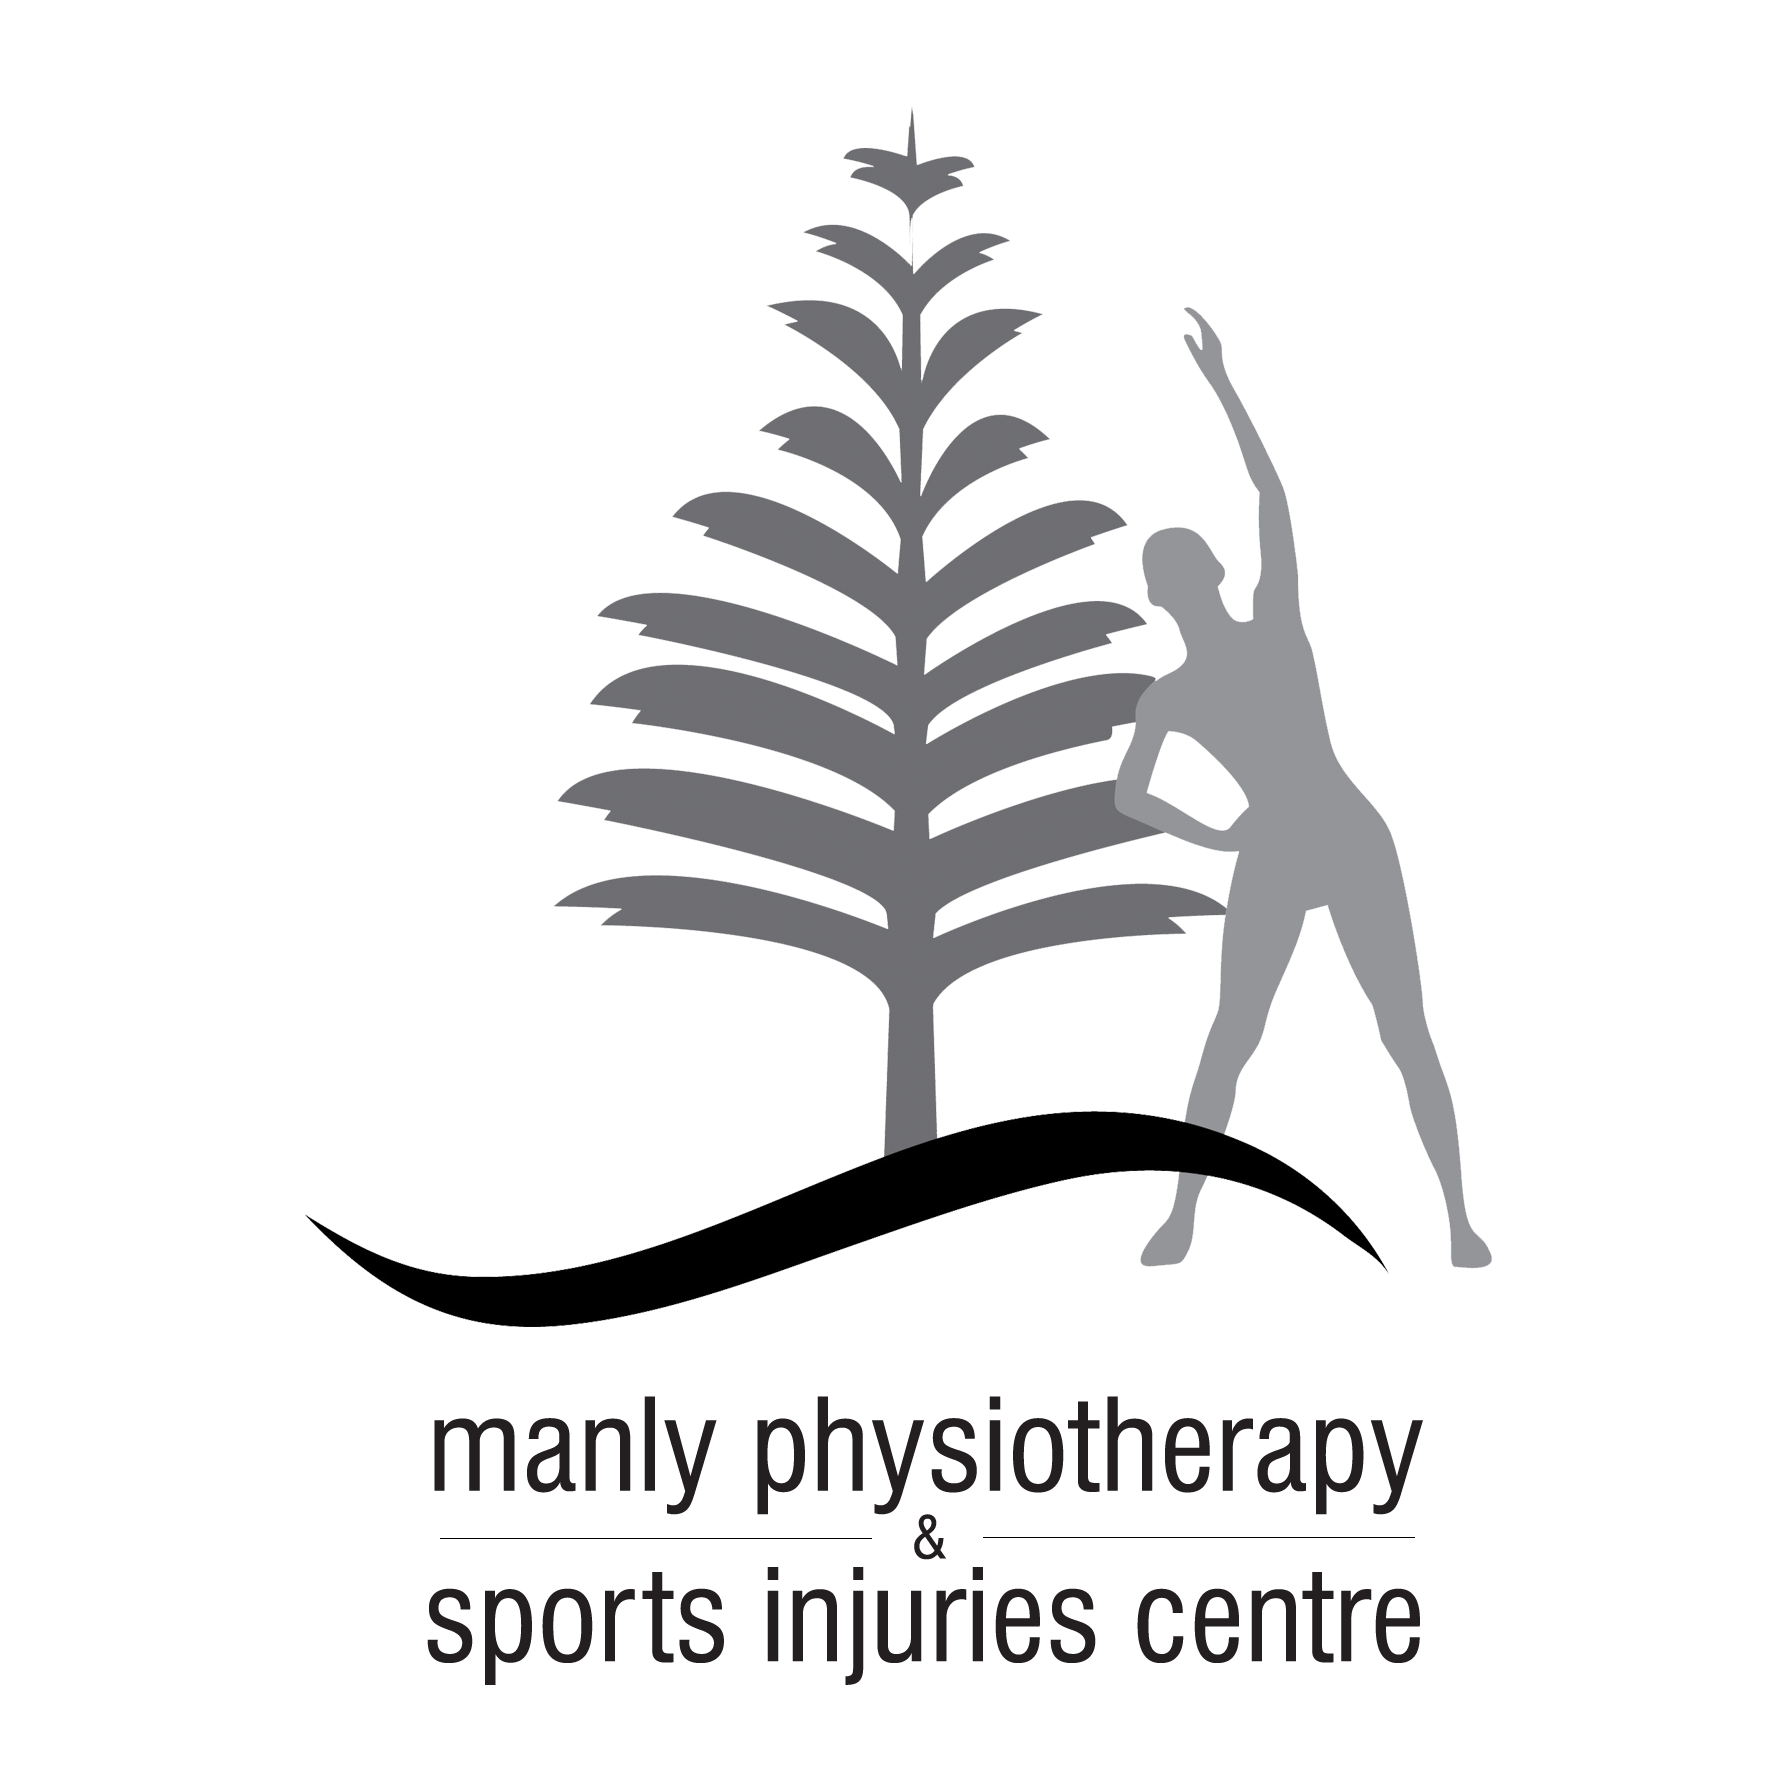 MGS Physiotherapy merges with Manly Physiotherapy to provide high quality care